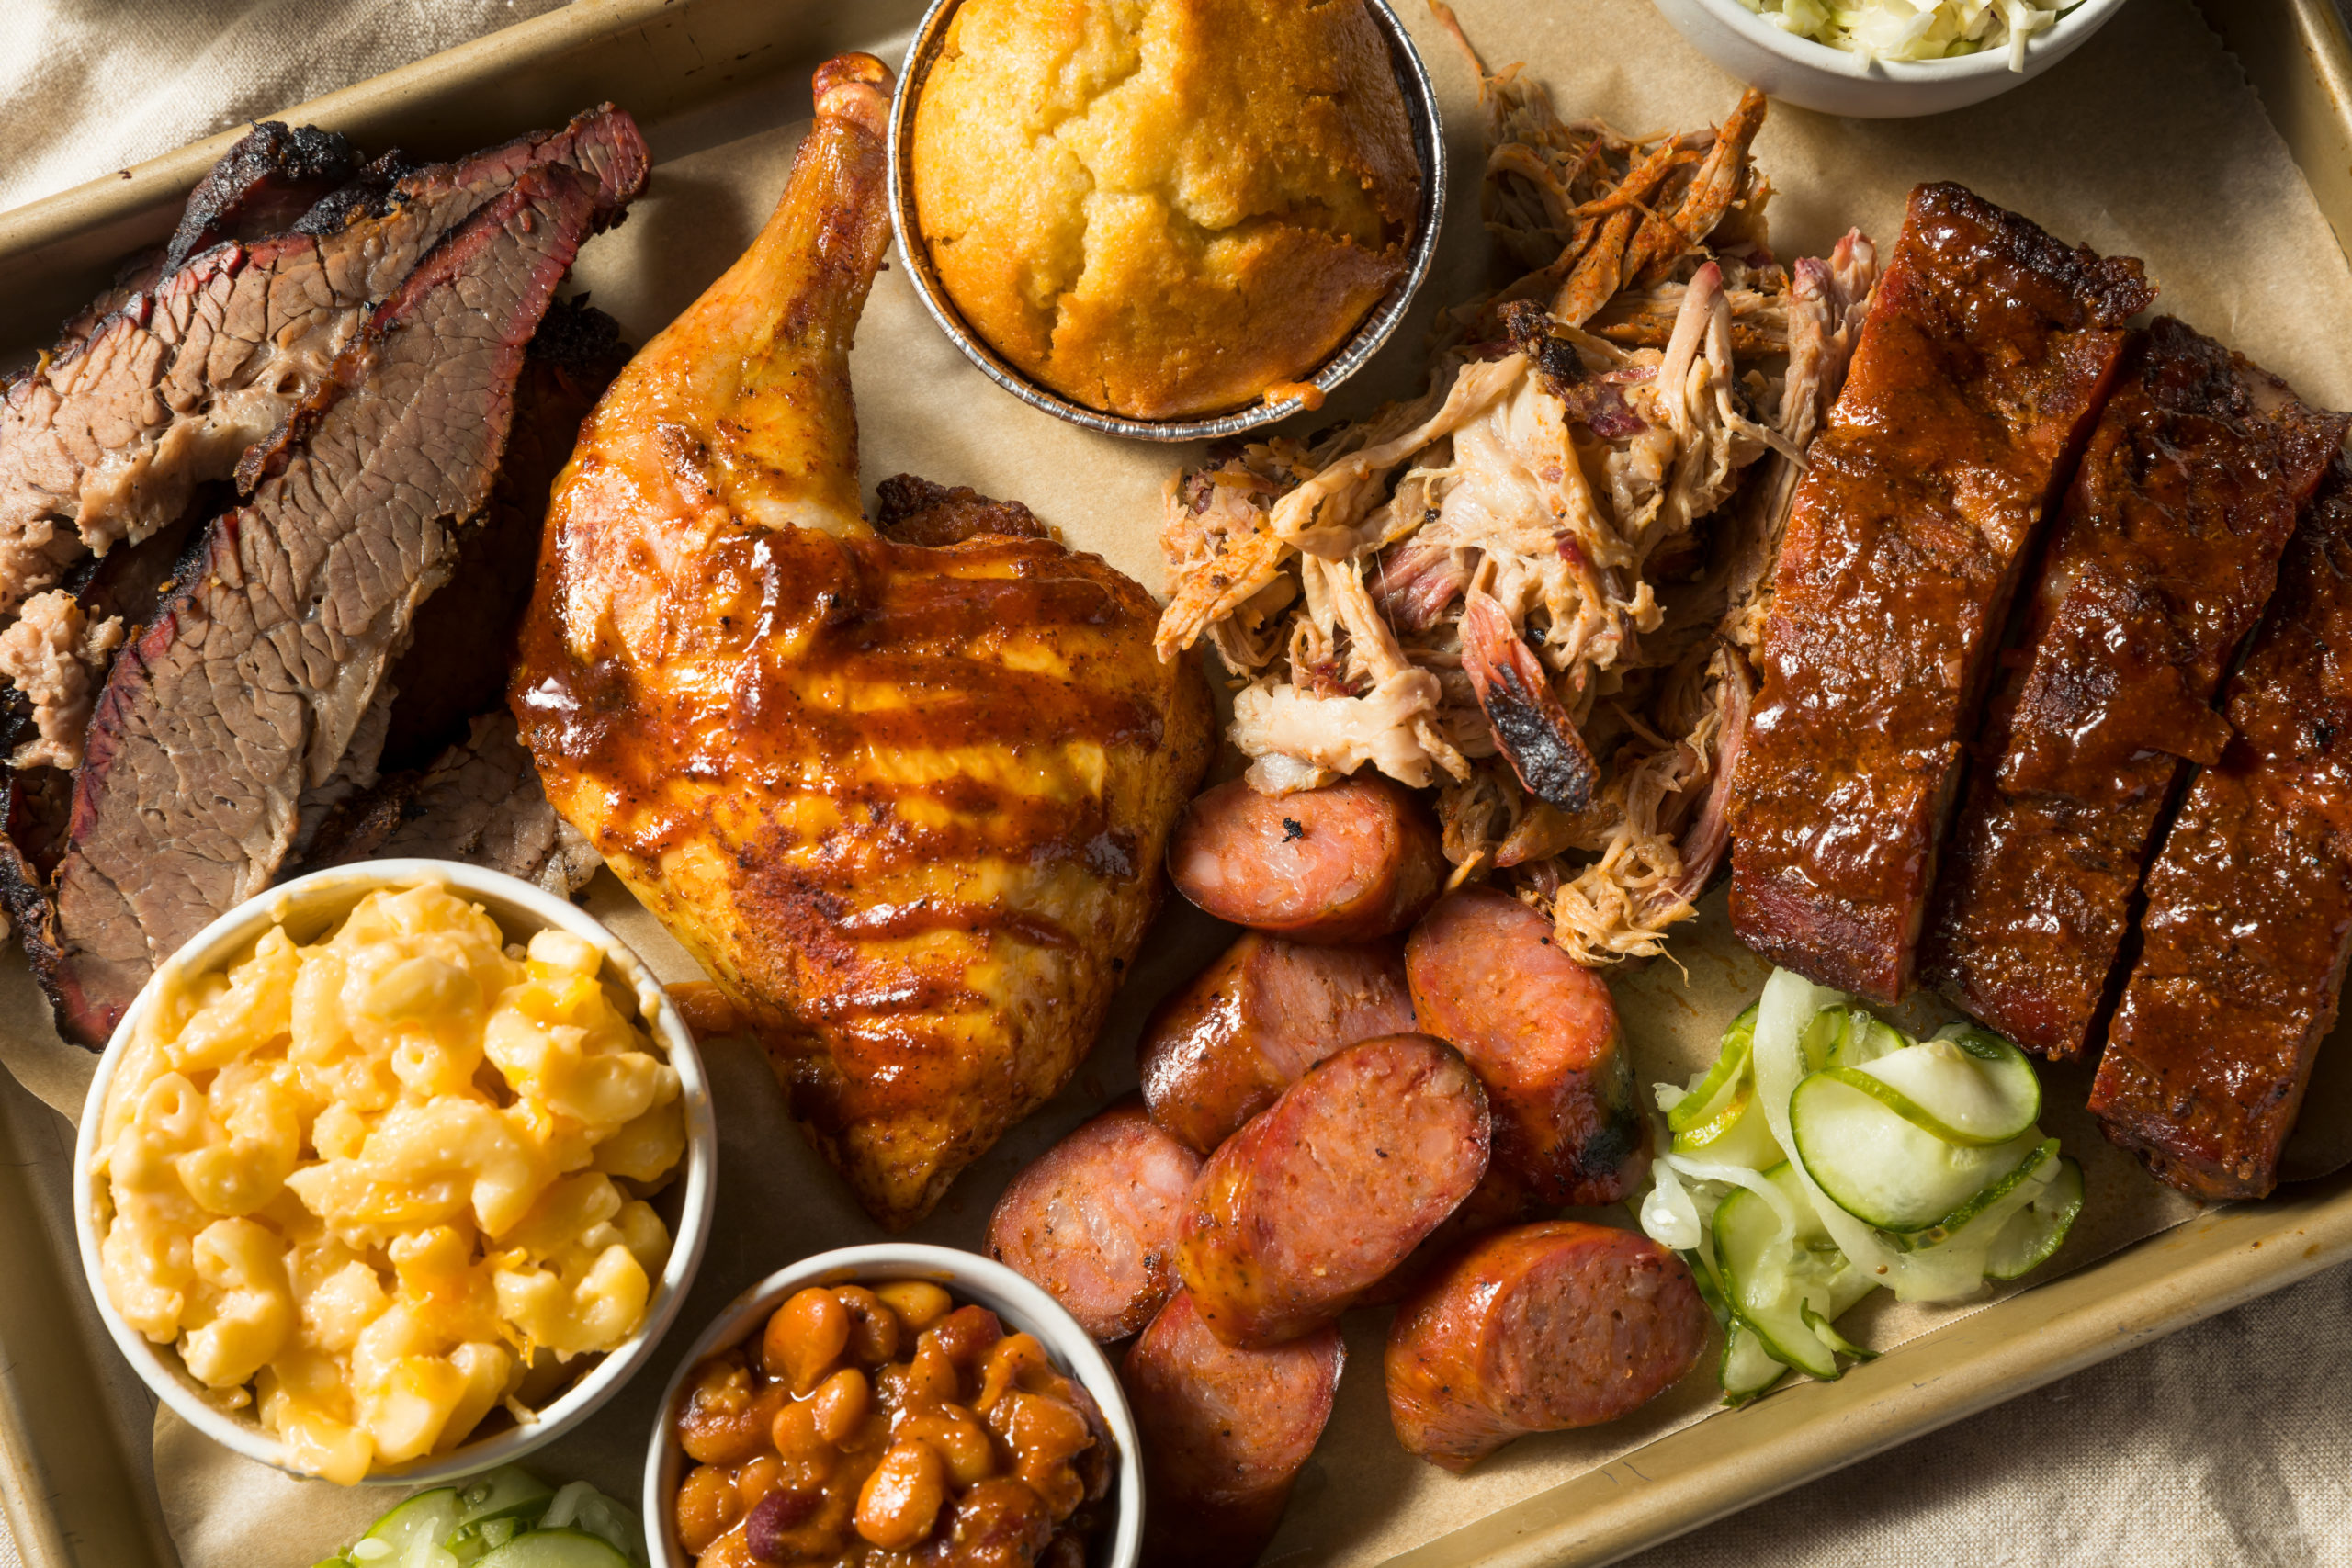 BBQ platter with sides | barbecue in Loudoun County, VA